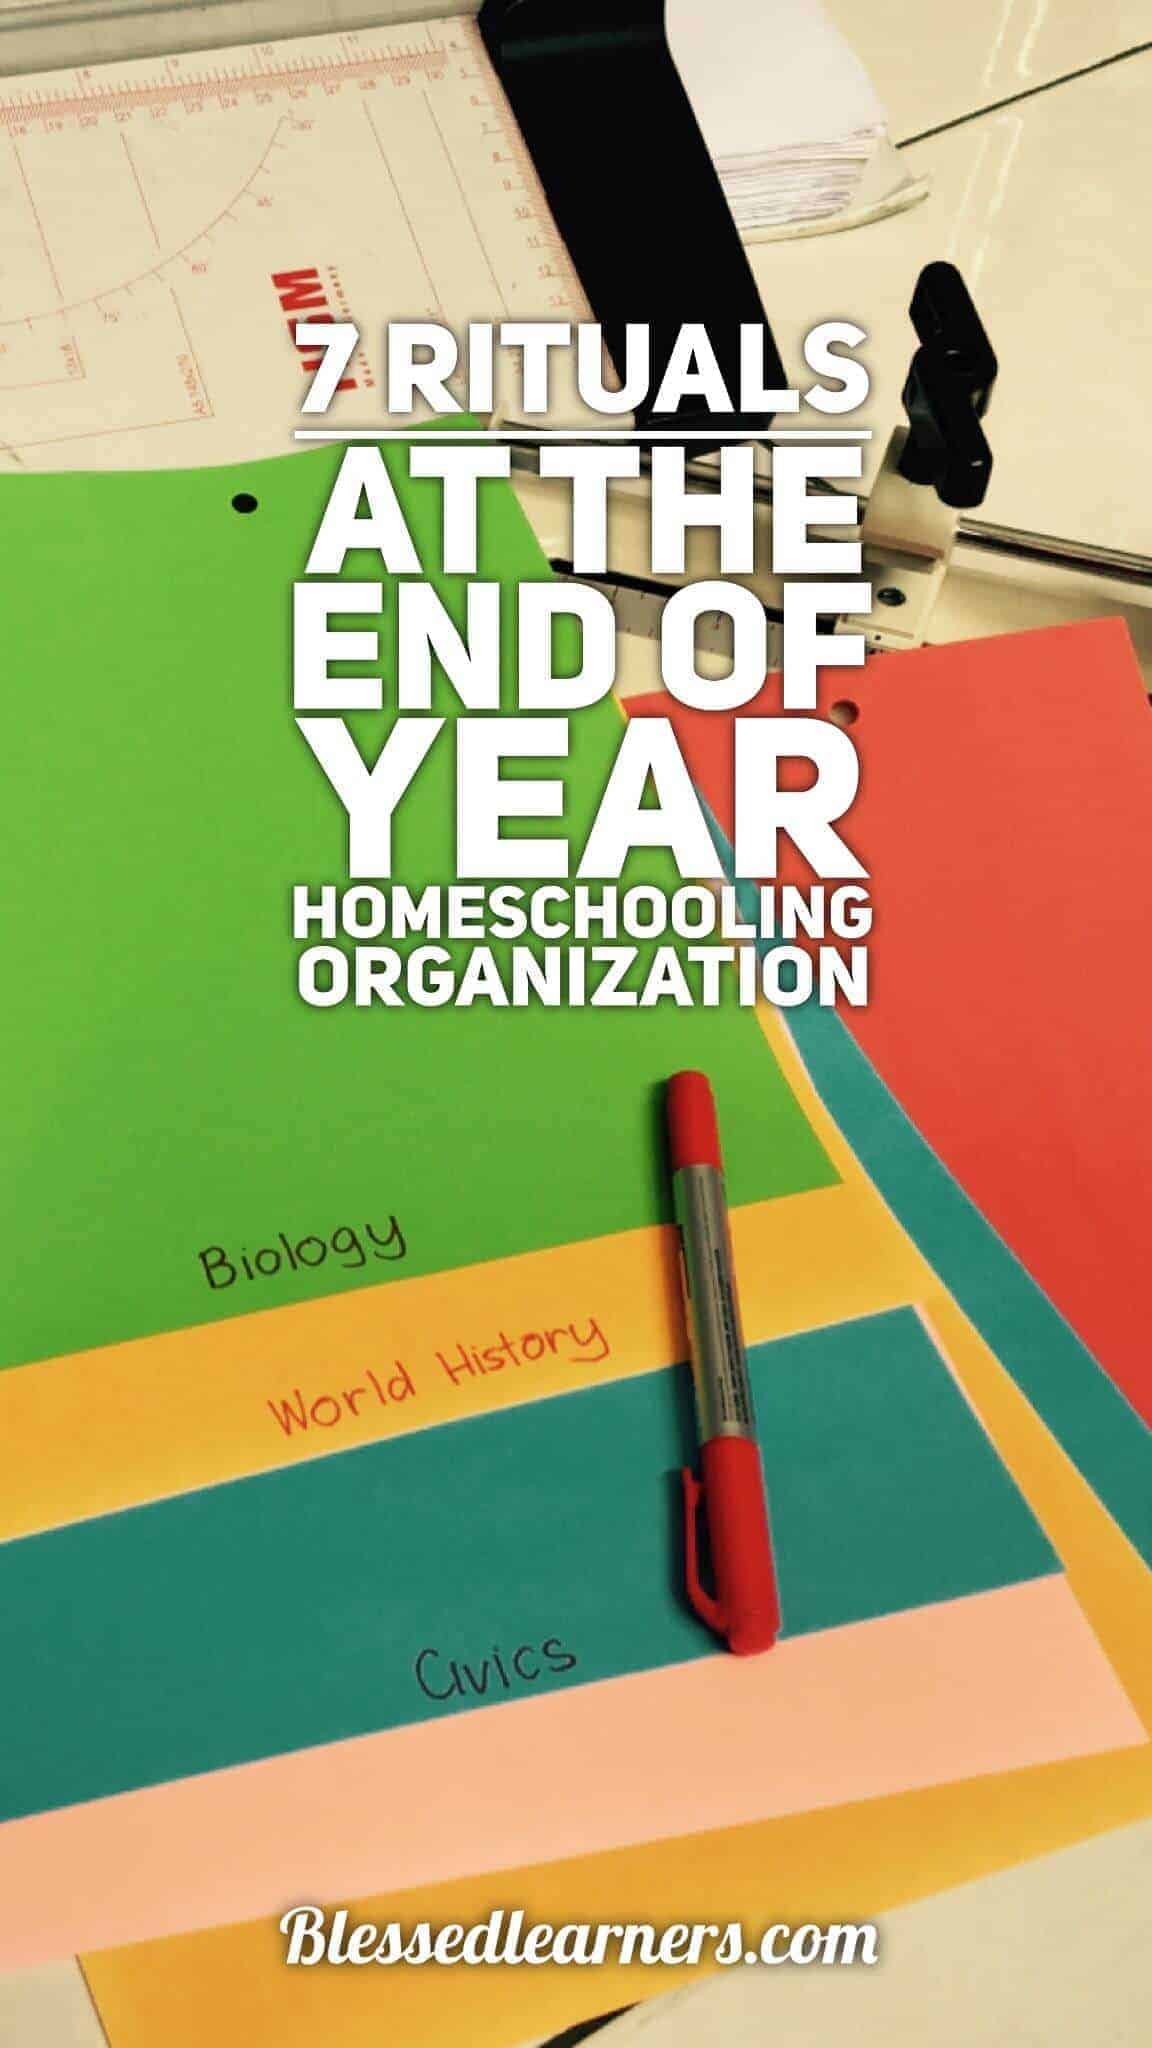 7 Rituals at The End of Year Homeschooling Organization